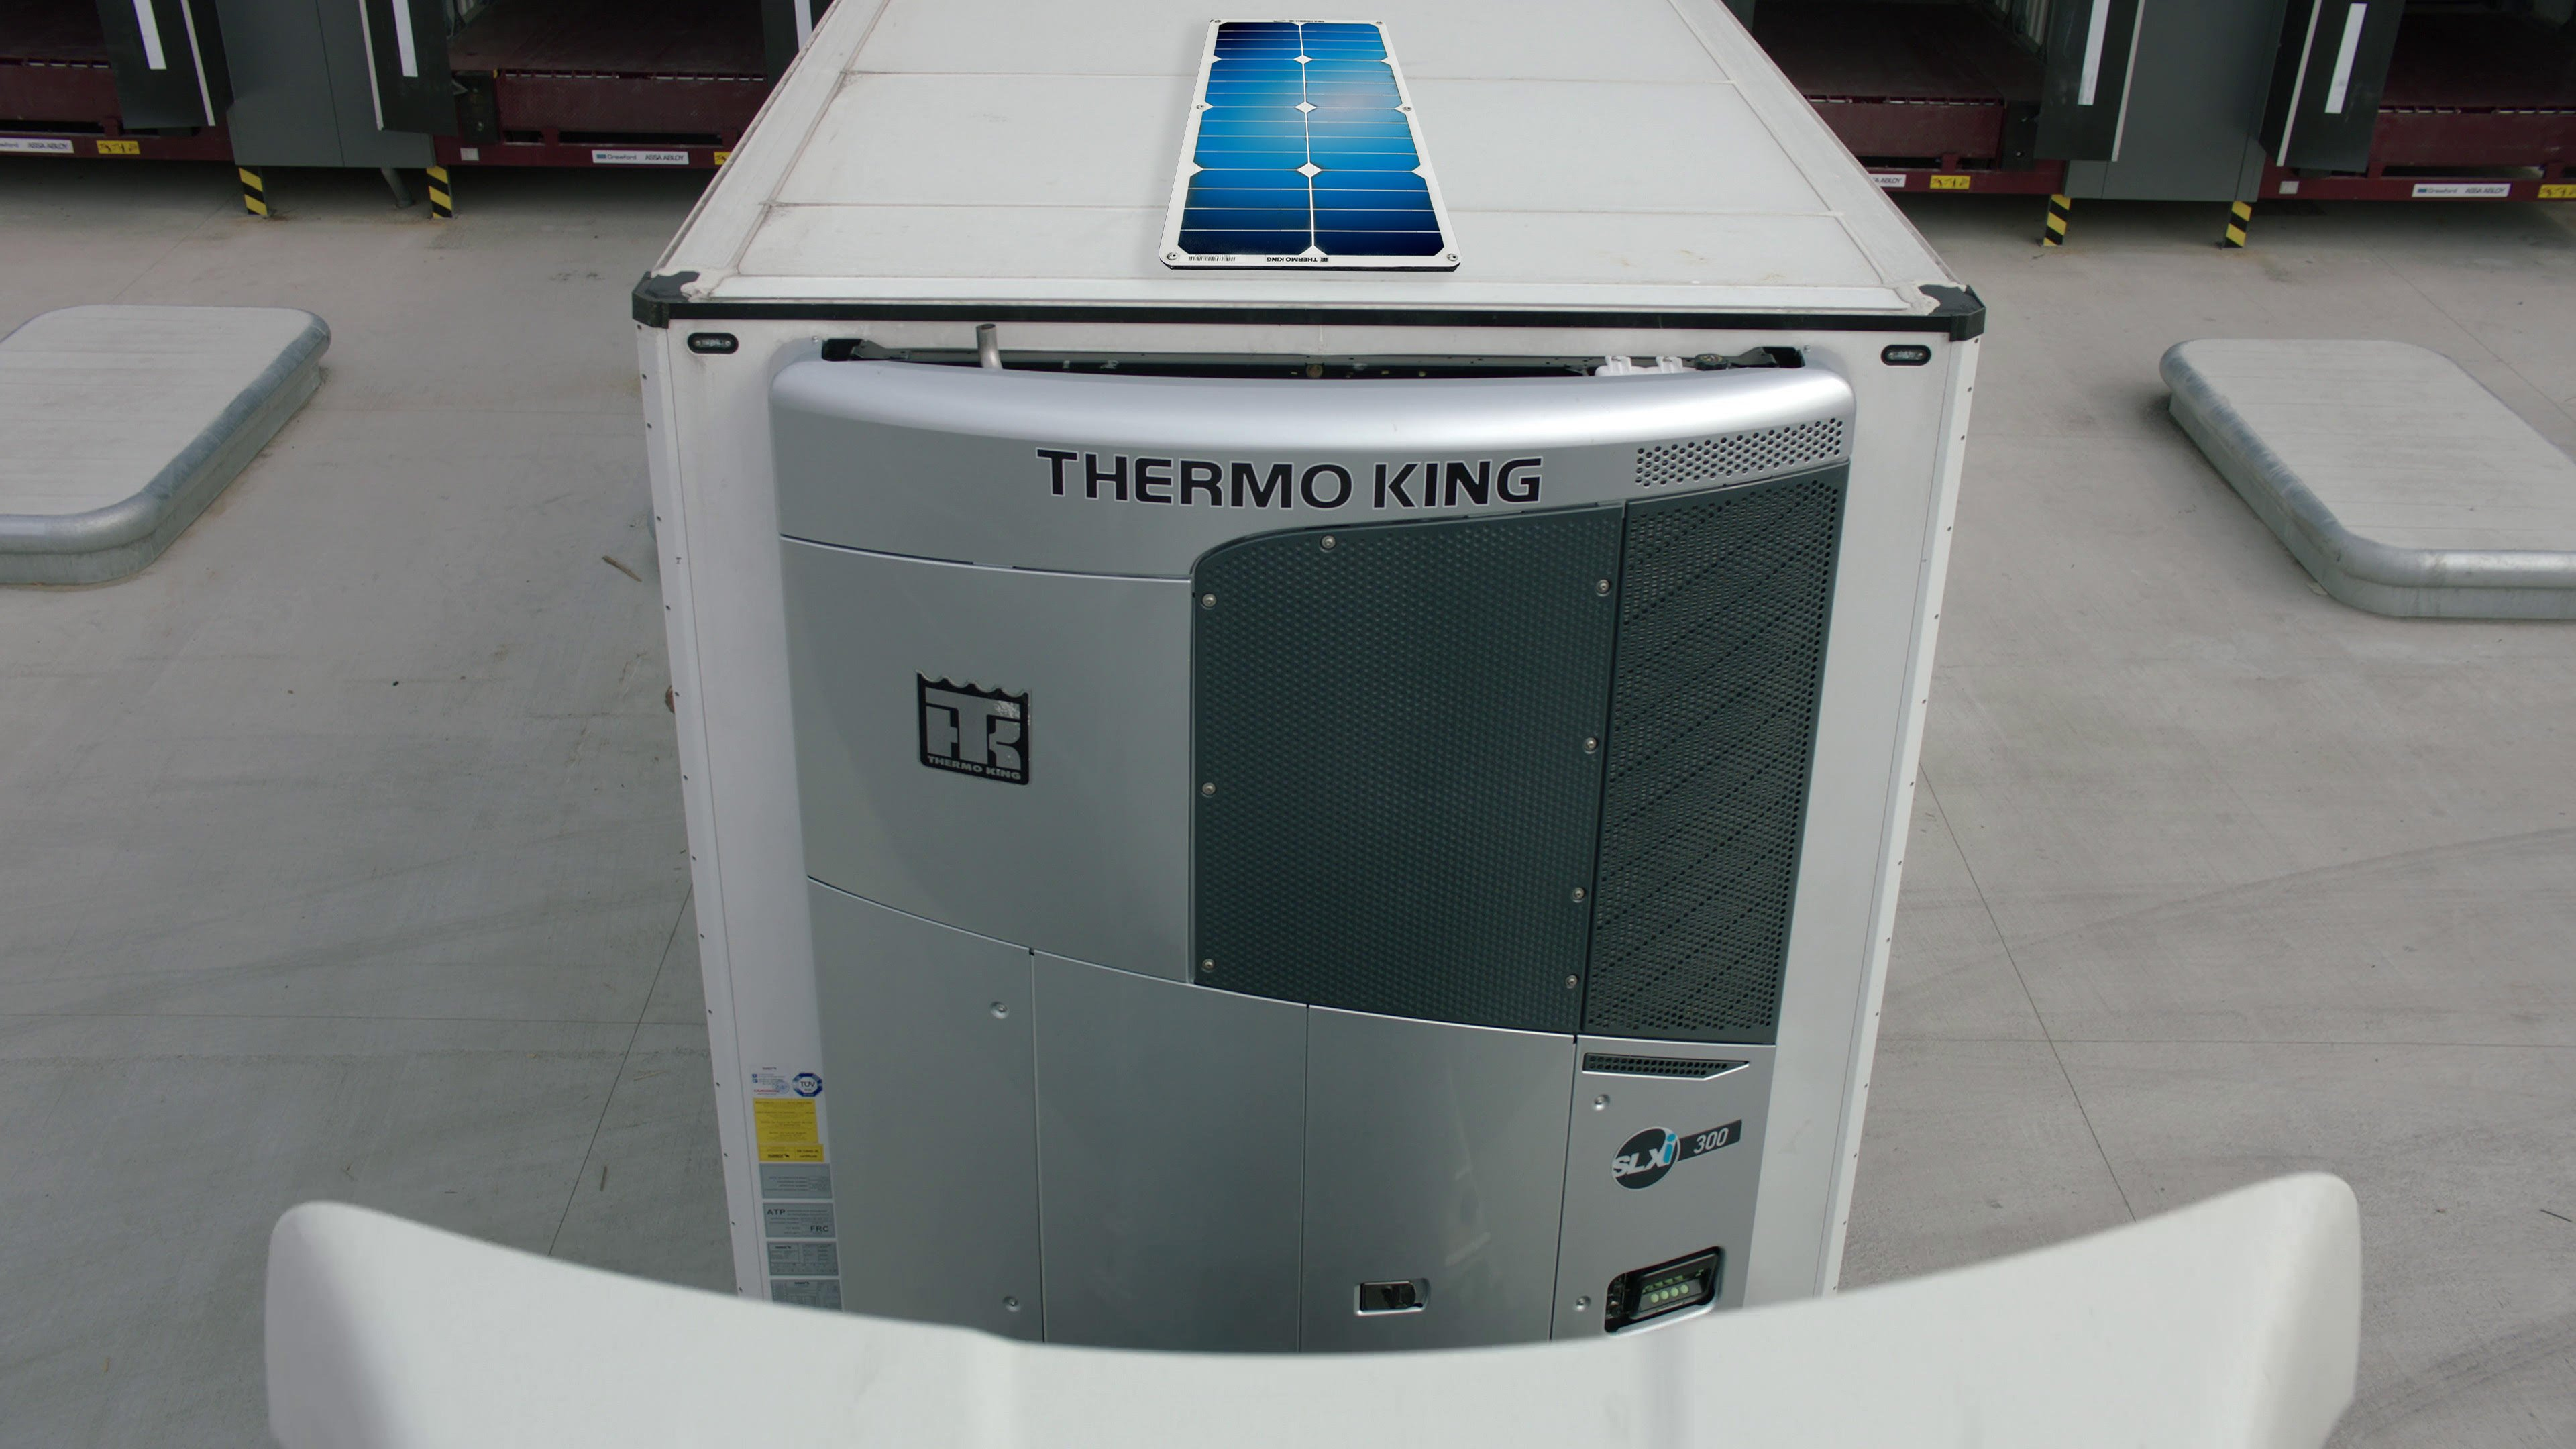 Solar Panels from Thermo King sustainable power management